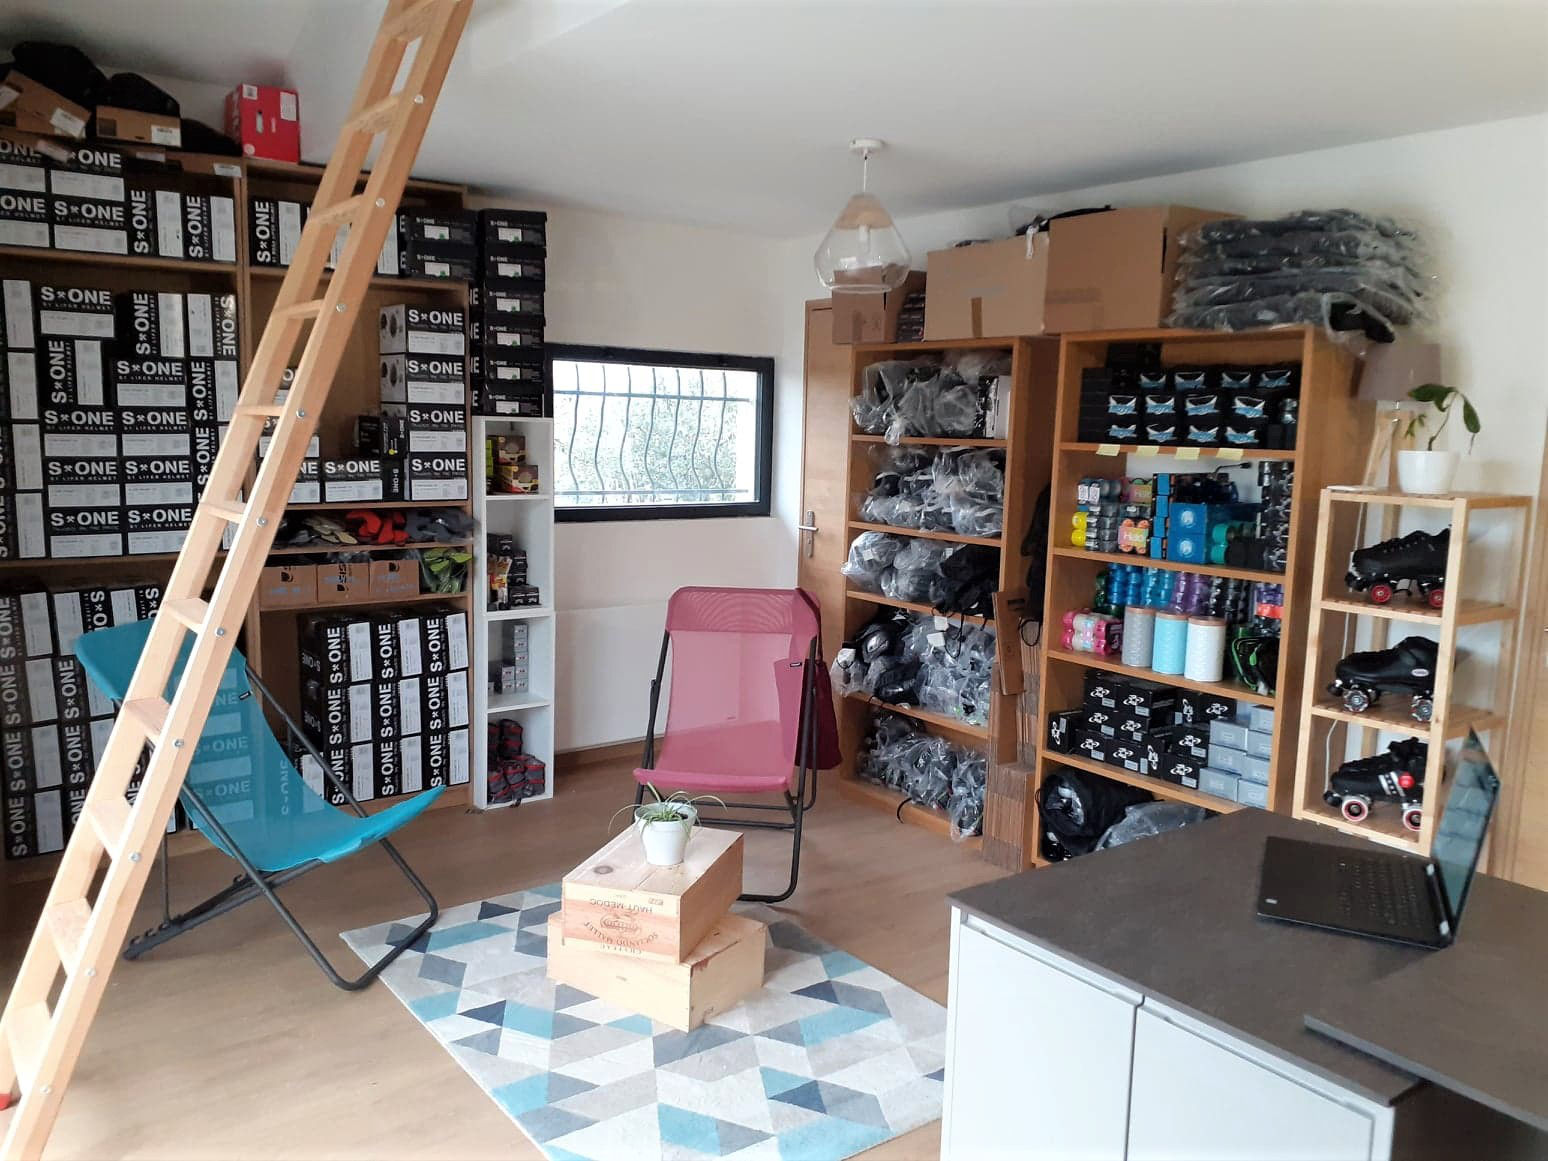 A peek inside the Myrollerderby brick and mortar shop at its current cosy location in 85 route de Craponne, 74140 Sciez in France. If you want to visit it, you better be fast as there are already plans to move the shop into High Street.